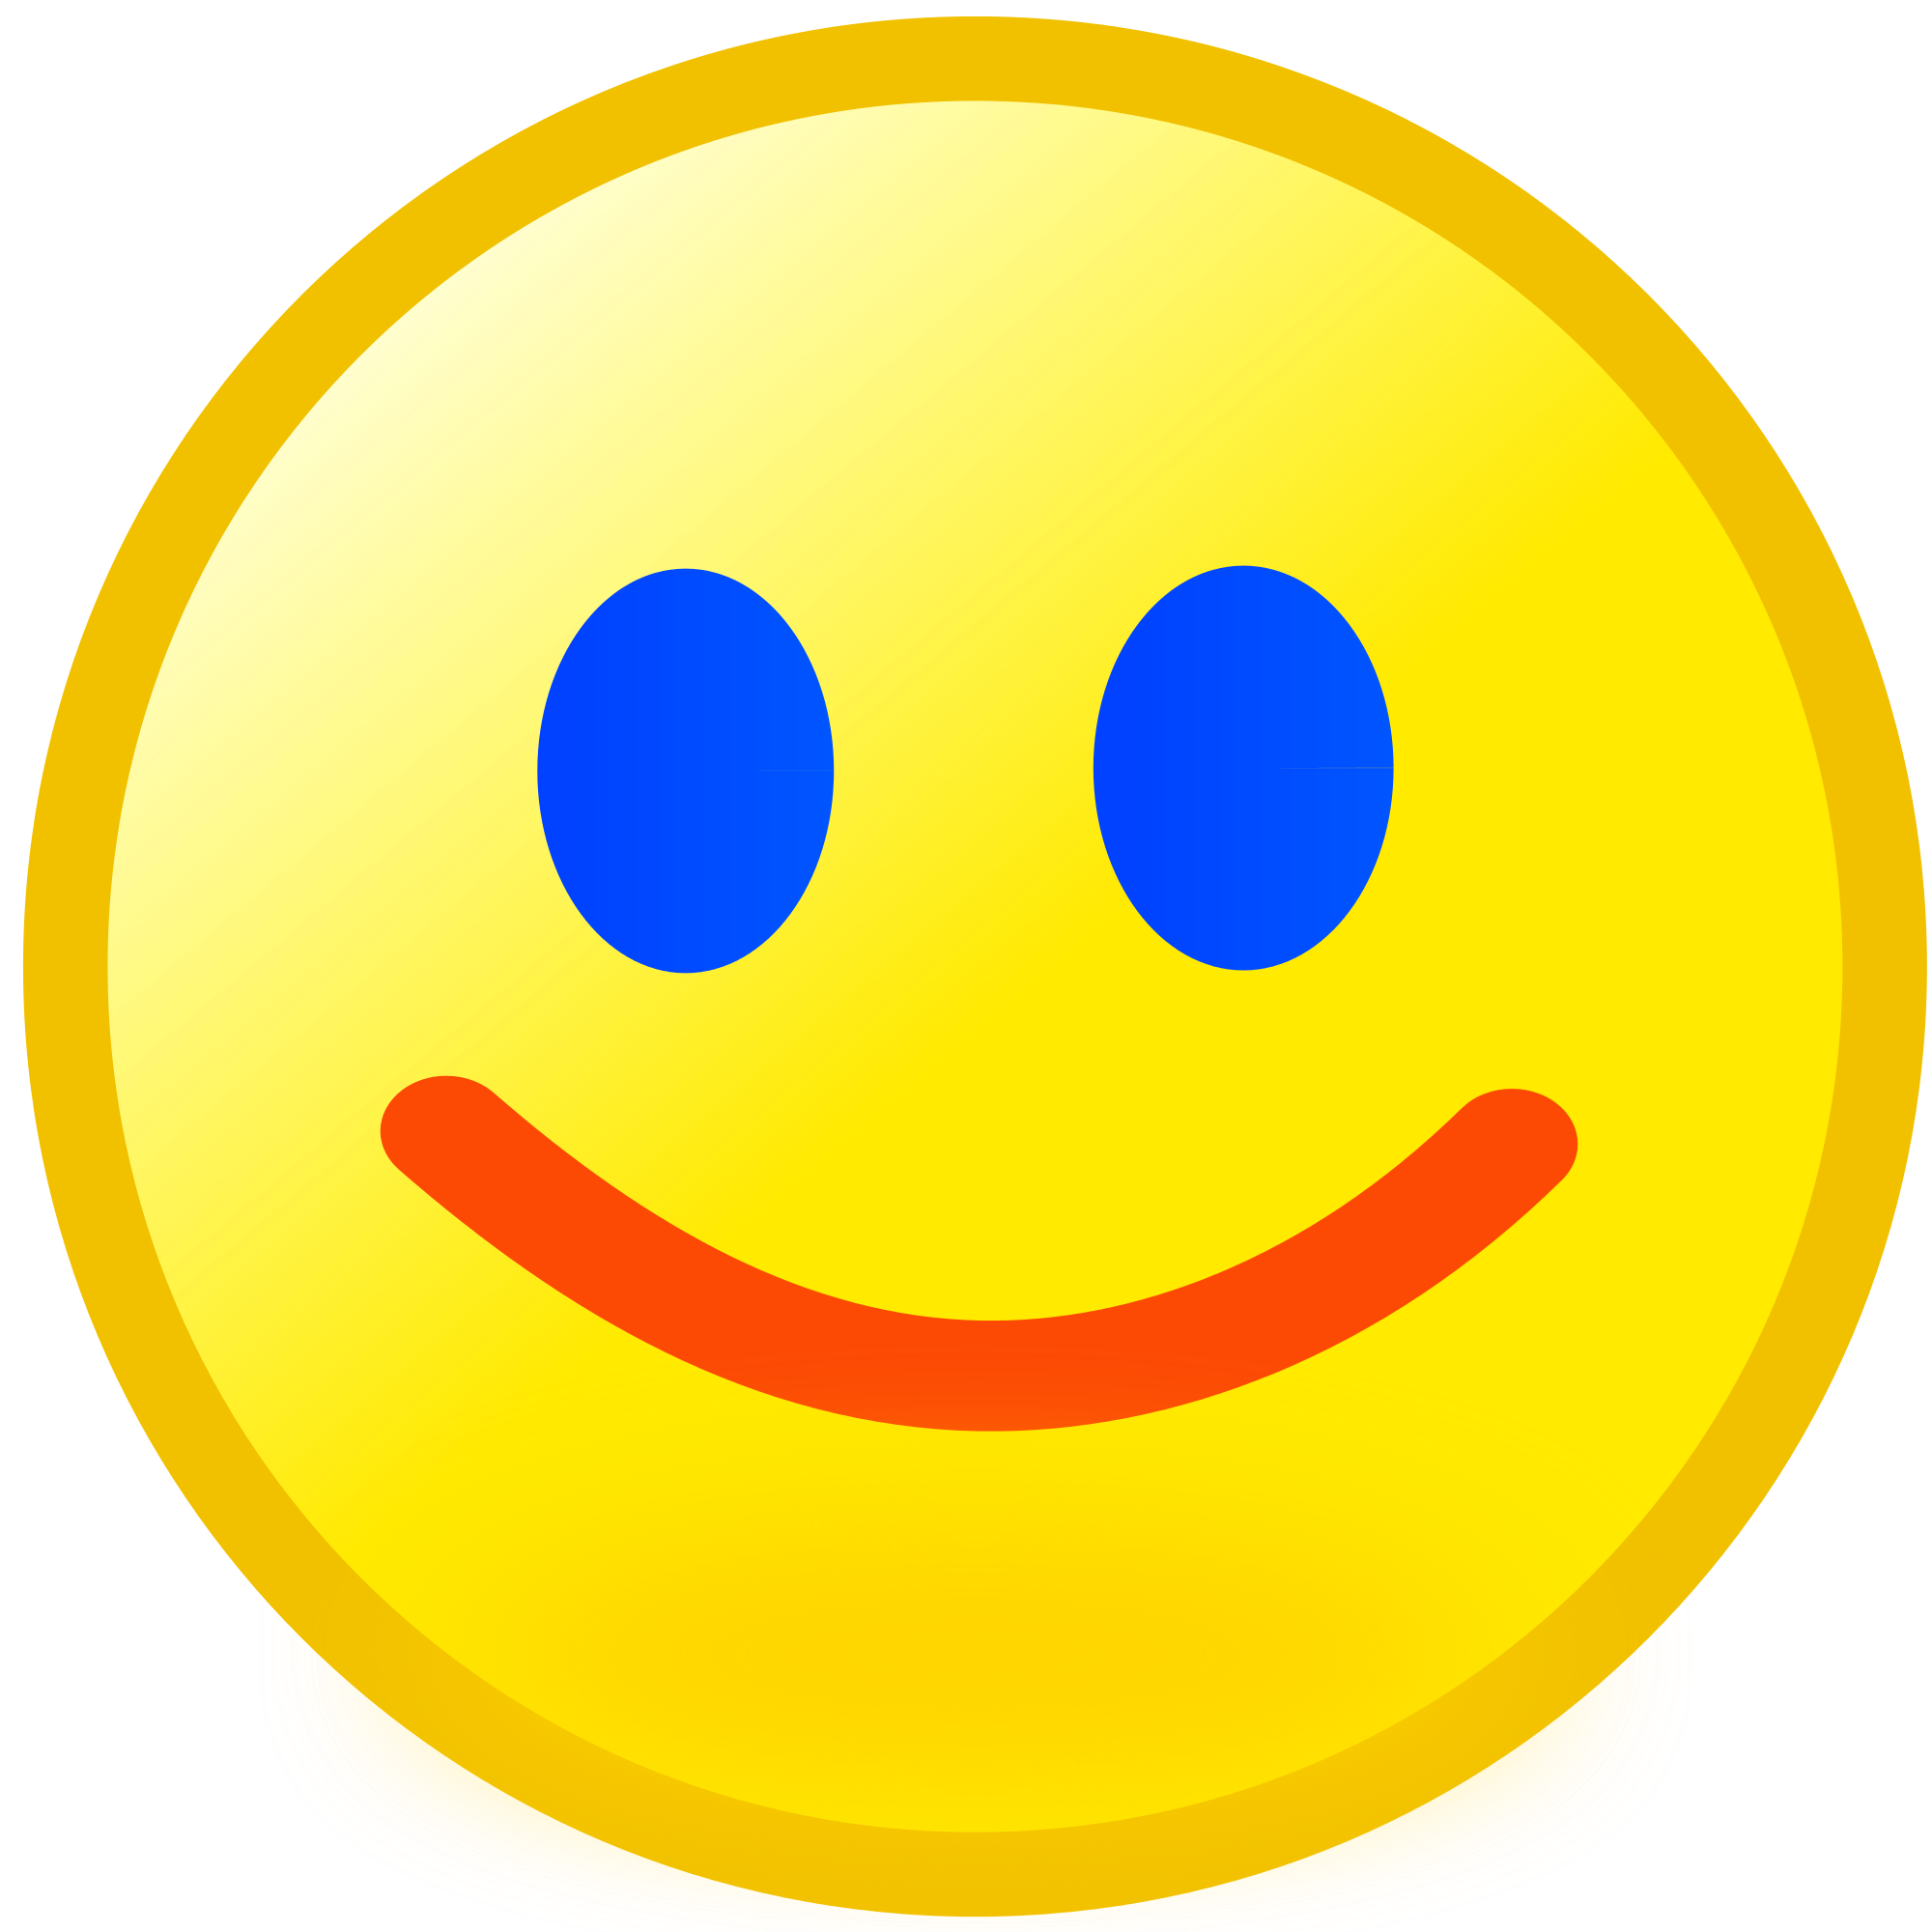 File:Smile.png - Wikimedia Commons